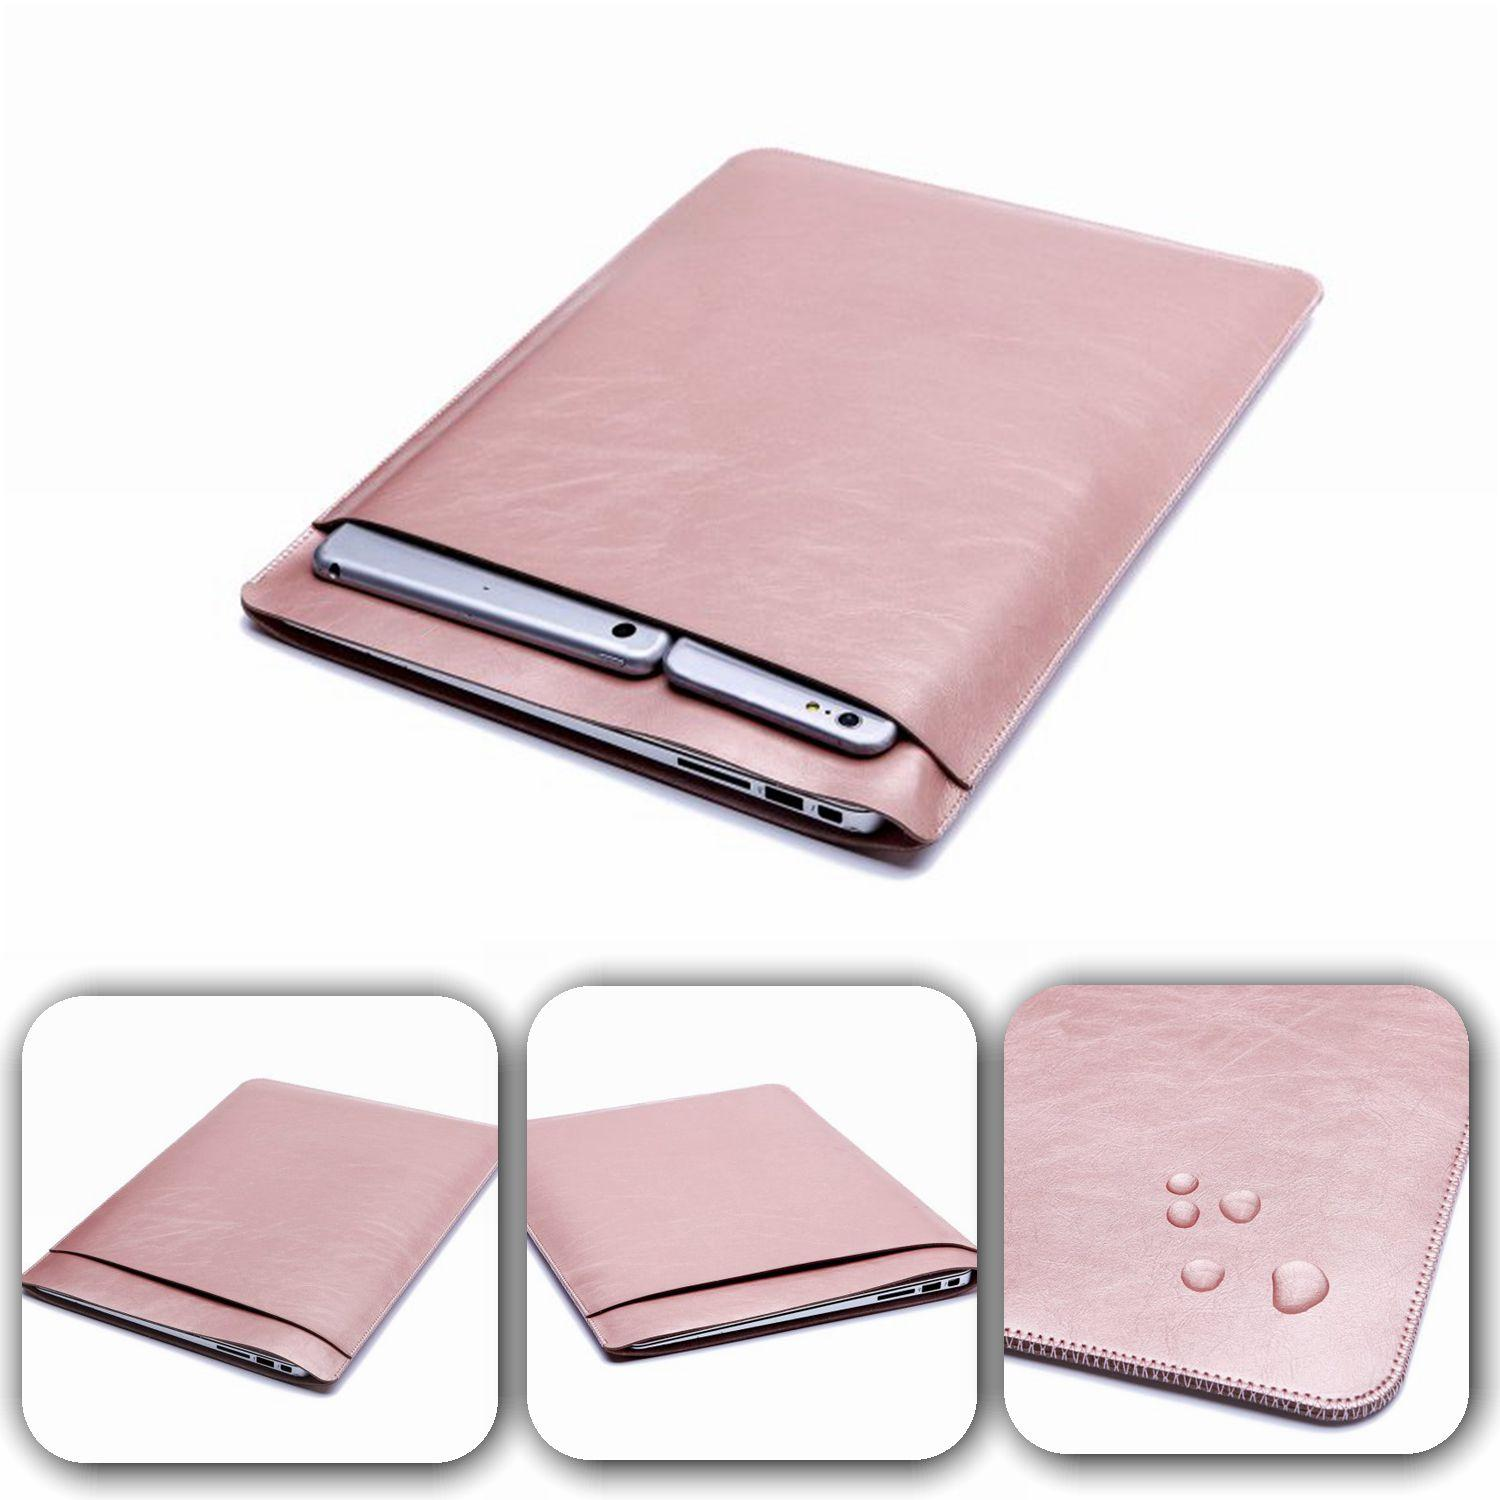 "Retina Waterproof Leather Double-deck Pouch Macbook Laptop Bag Sleeve Case Cover for Apple MacBook air 11"" 12"" 13"" for Macbook pro 13"" 15"""